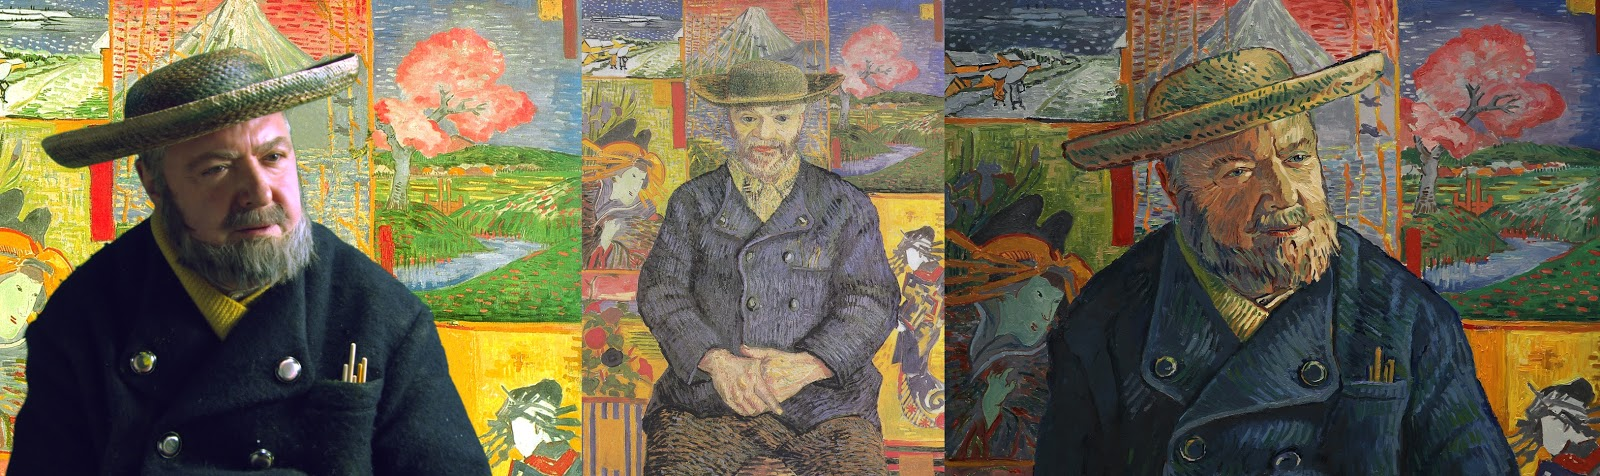 John Sessions,  Portrait of Père Tanguy  (1887), and still of Père Tanguy in  Loving Vincent (  https://lovingvincent.com/images/zdjecia/John%20Sessions_Pere%20Tanguy_High.jpg  )